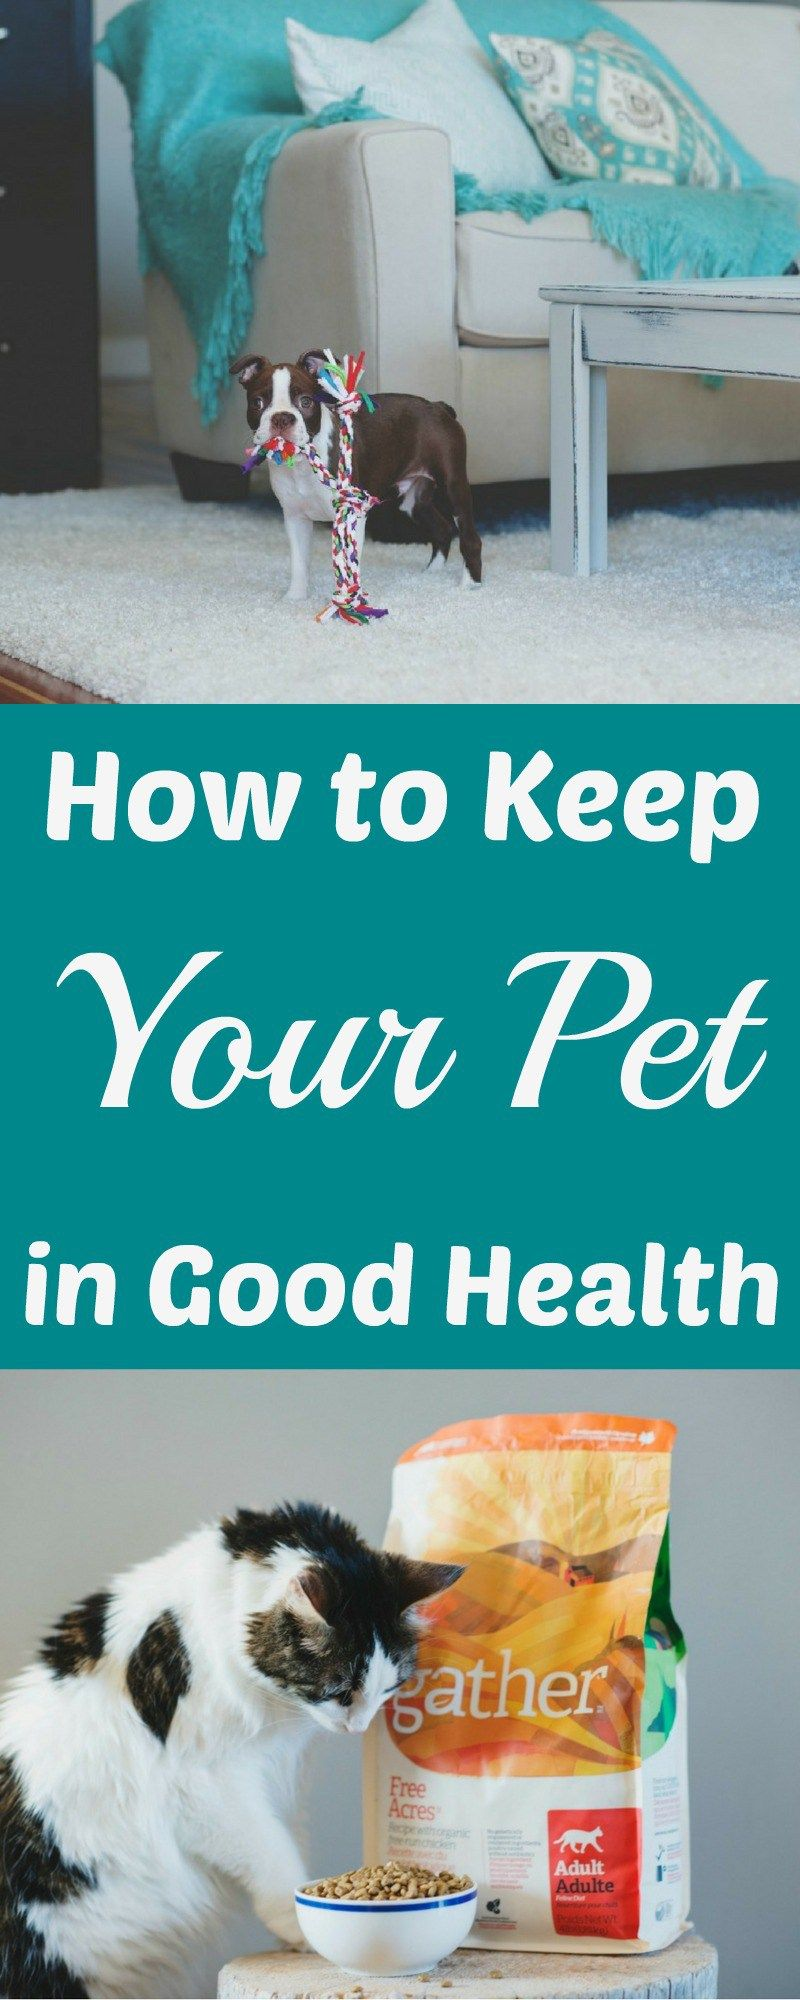 How to Keep Your Pet in Good Health Pets, Animals for